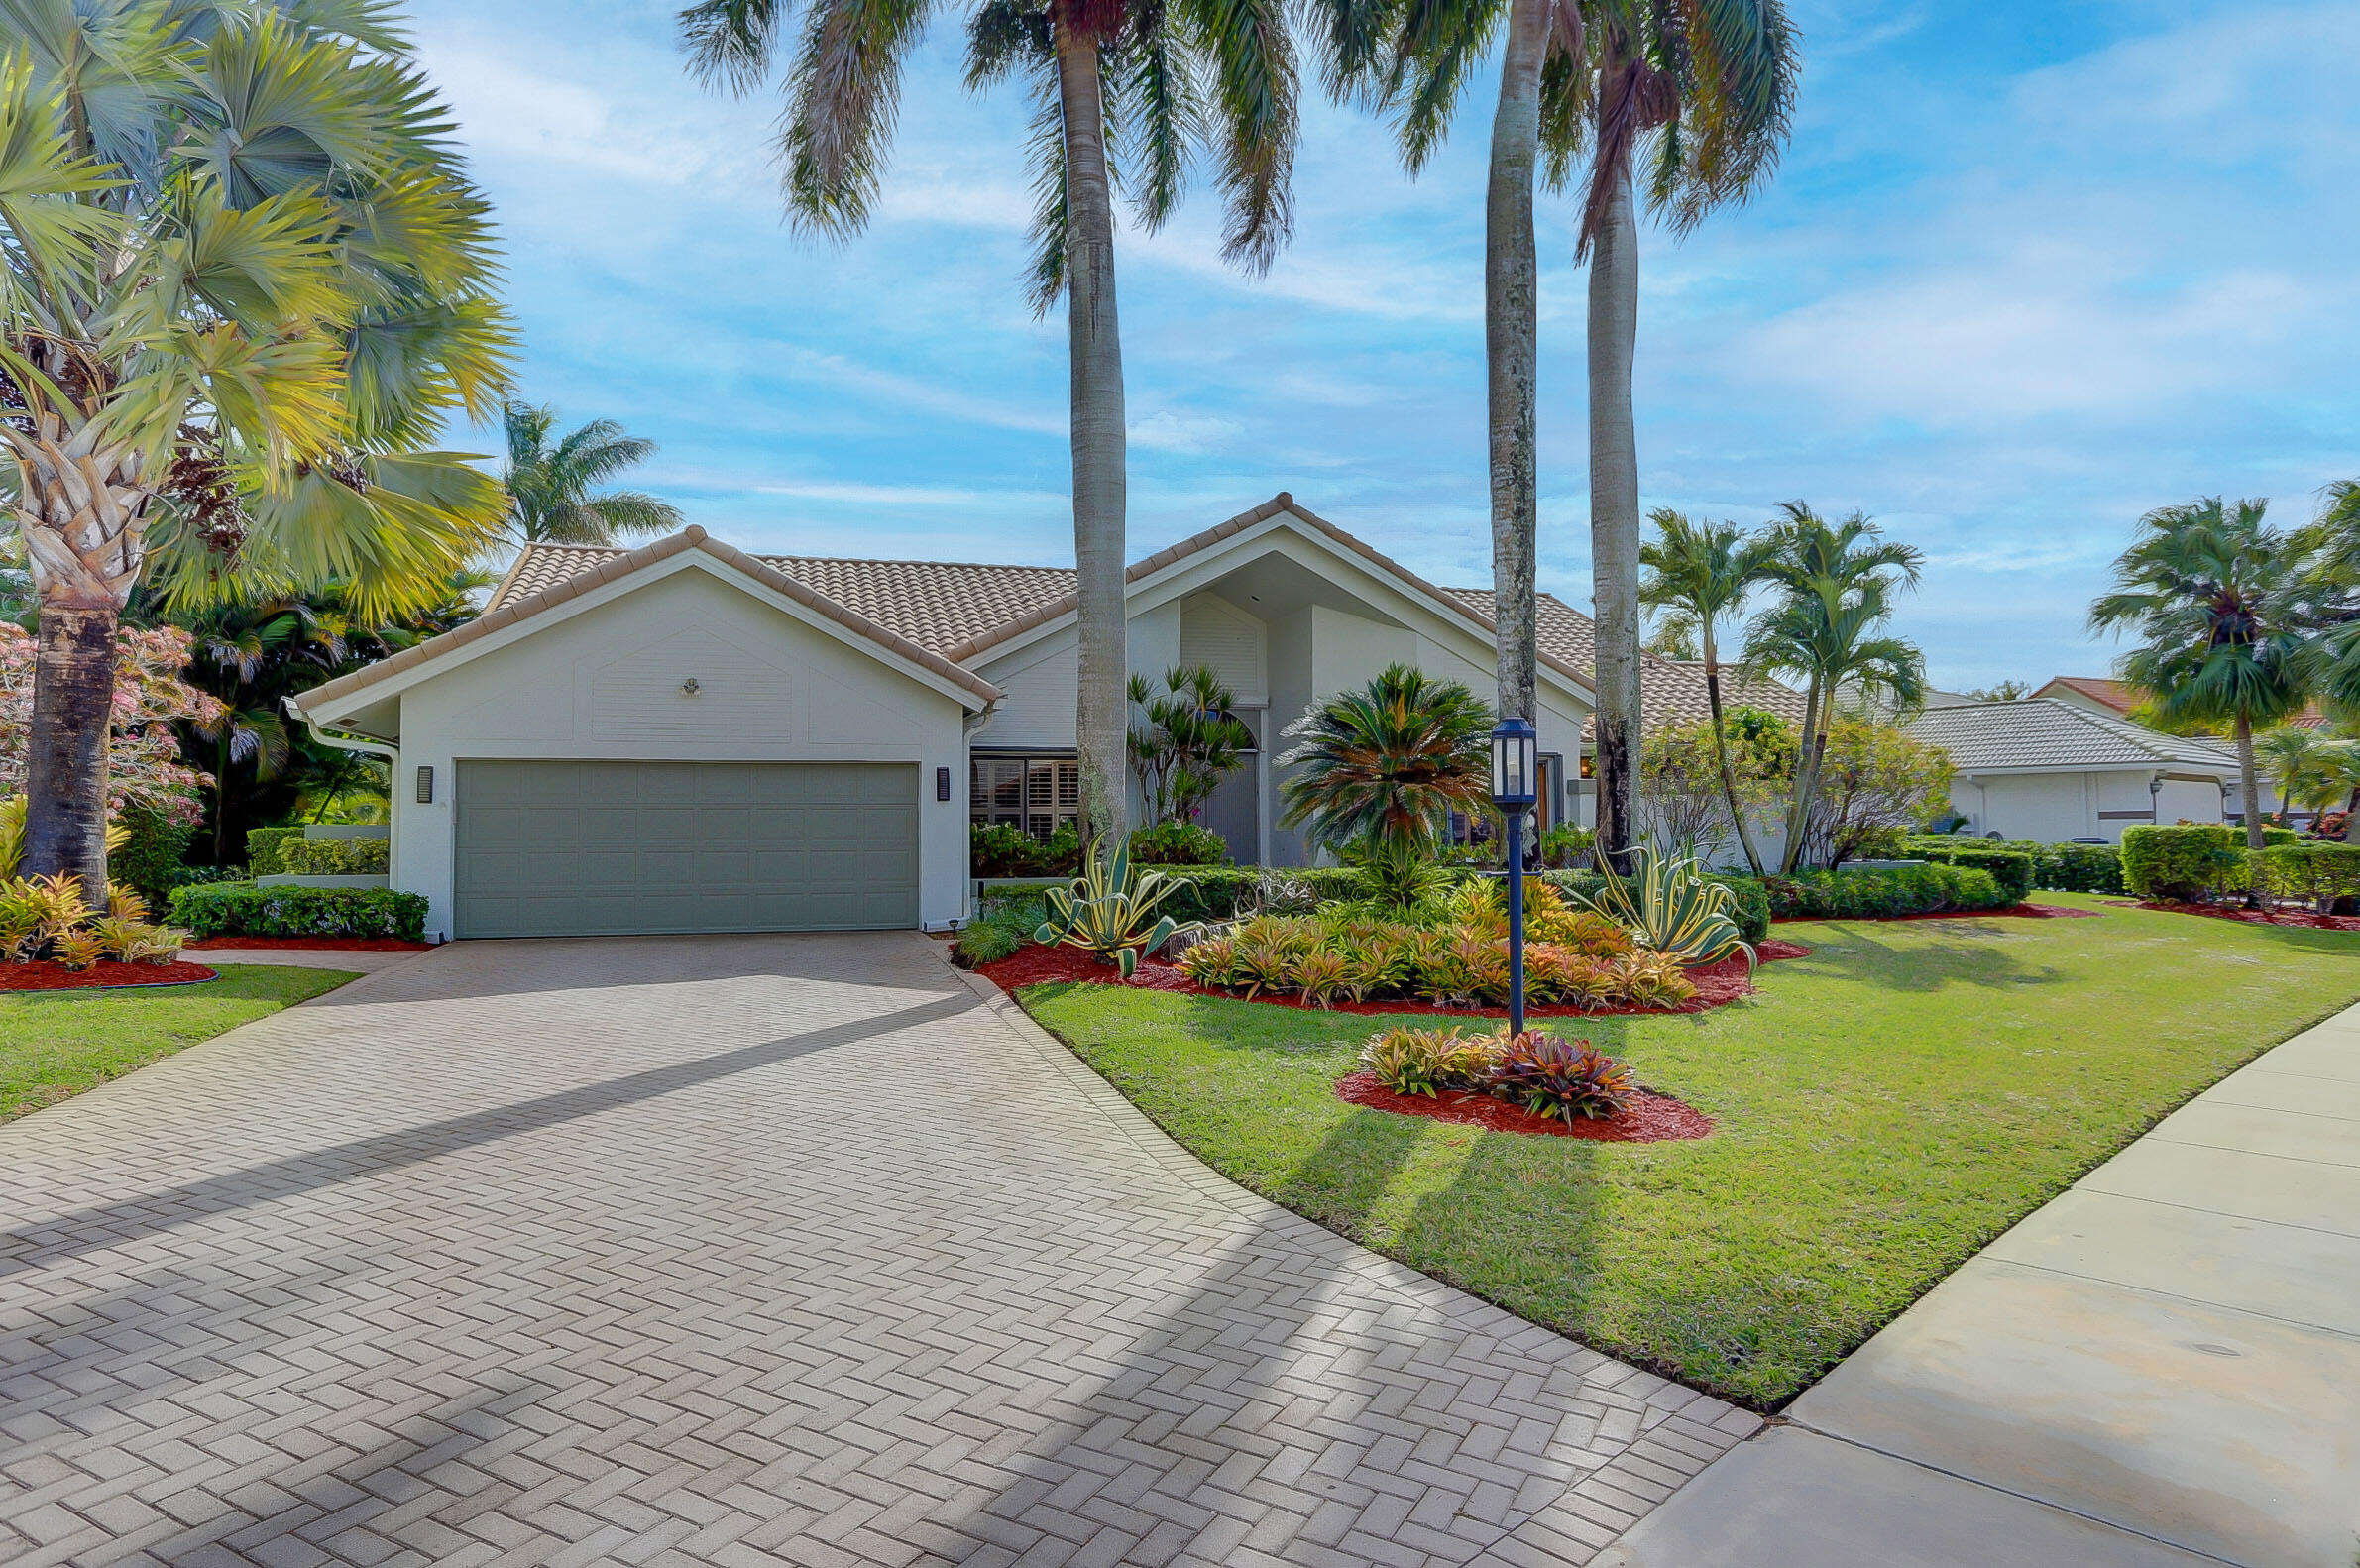 17556  Charnwood Drive  For Sale 10746144, FL